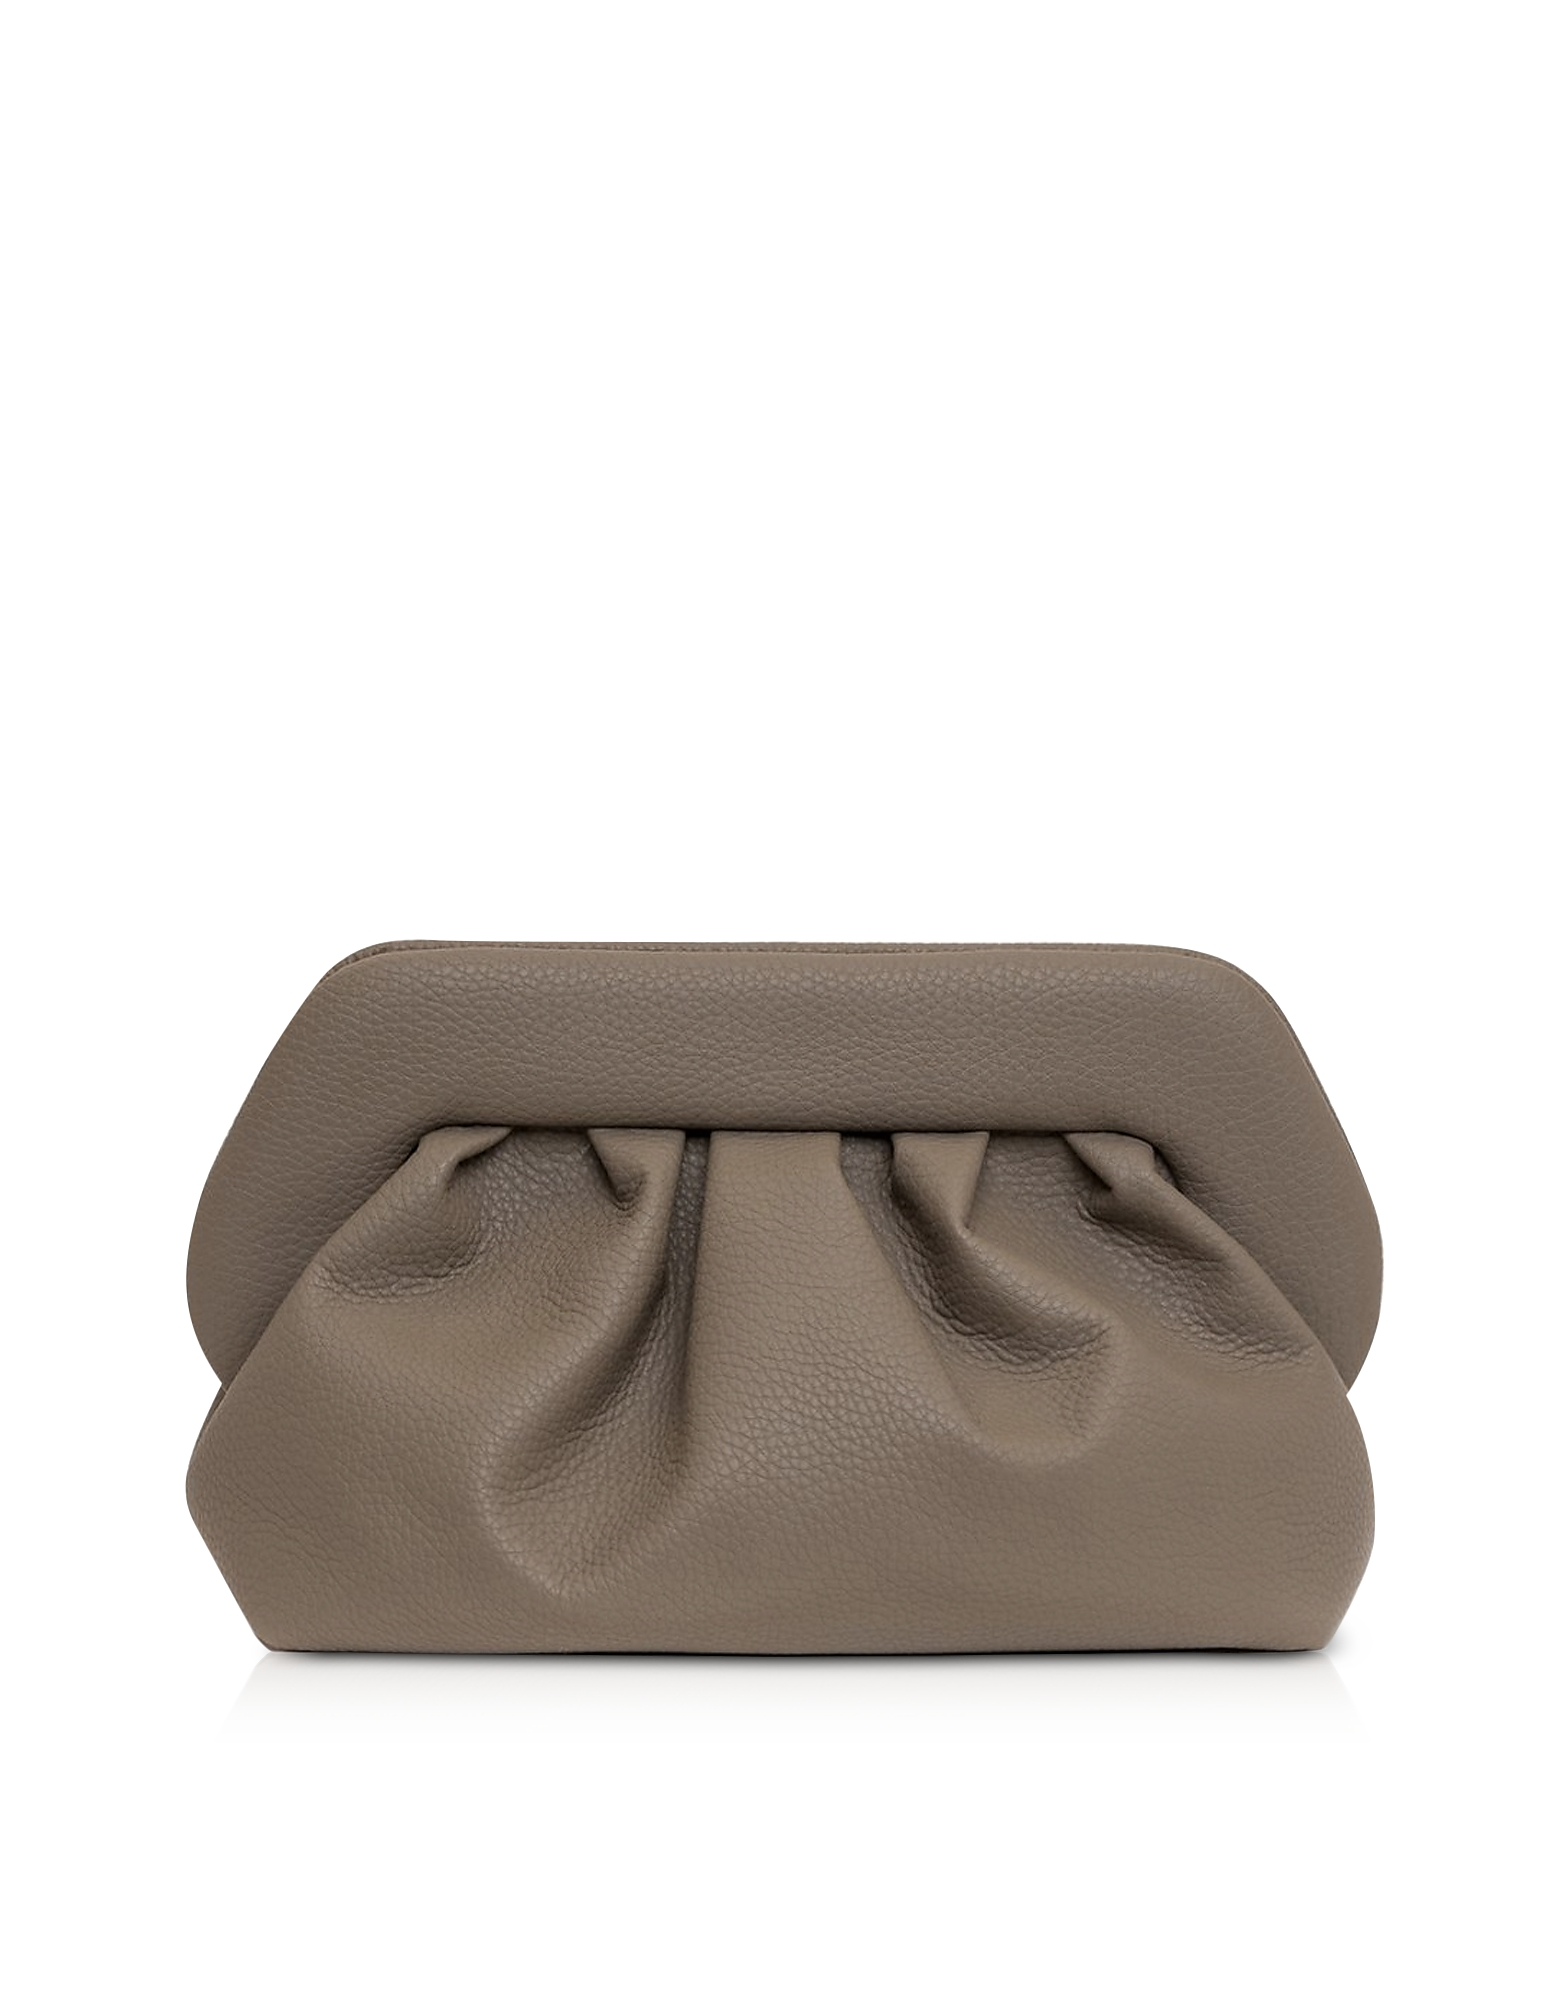 THEMOIRÉ Designer Handbags, Mushroom Grained Leather Pouch Bag